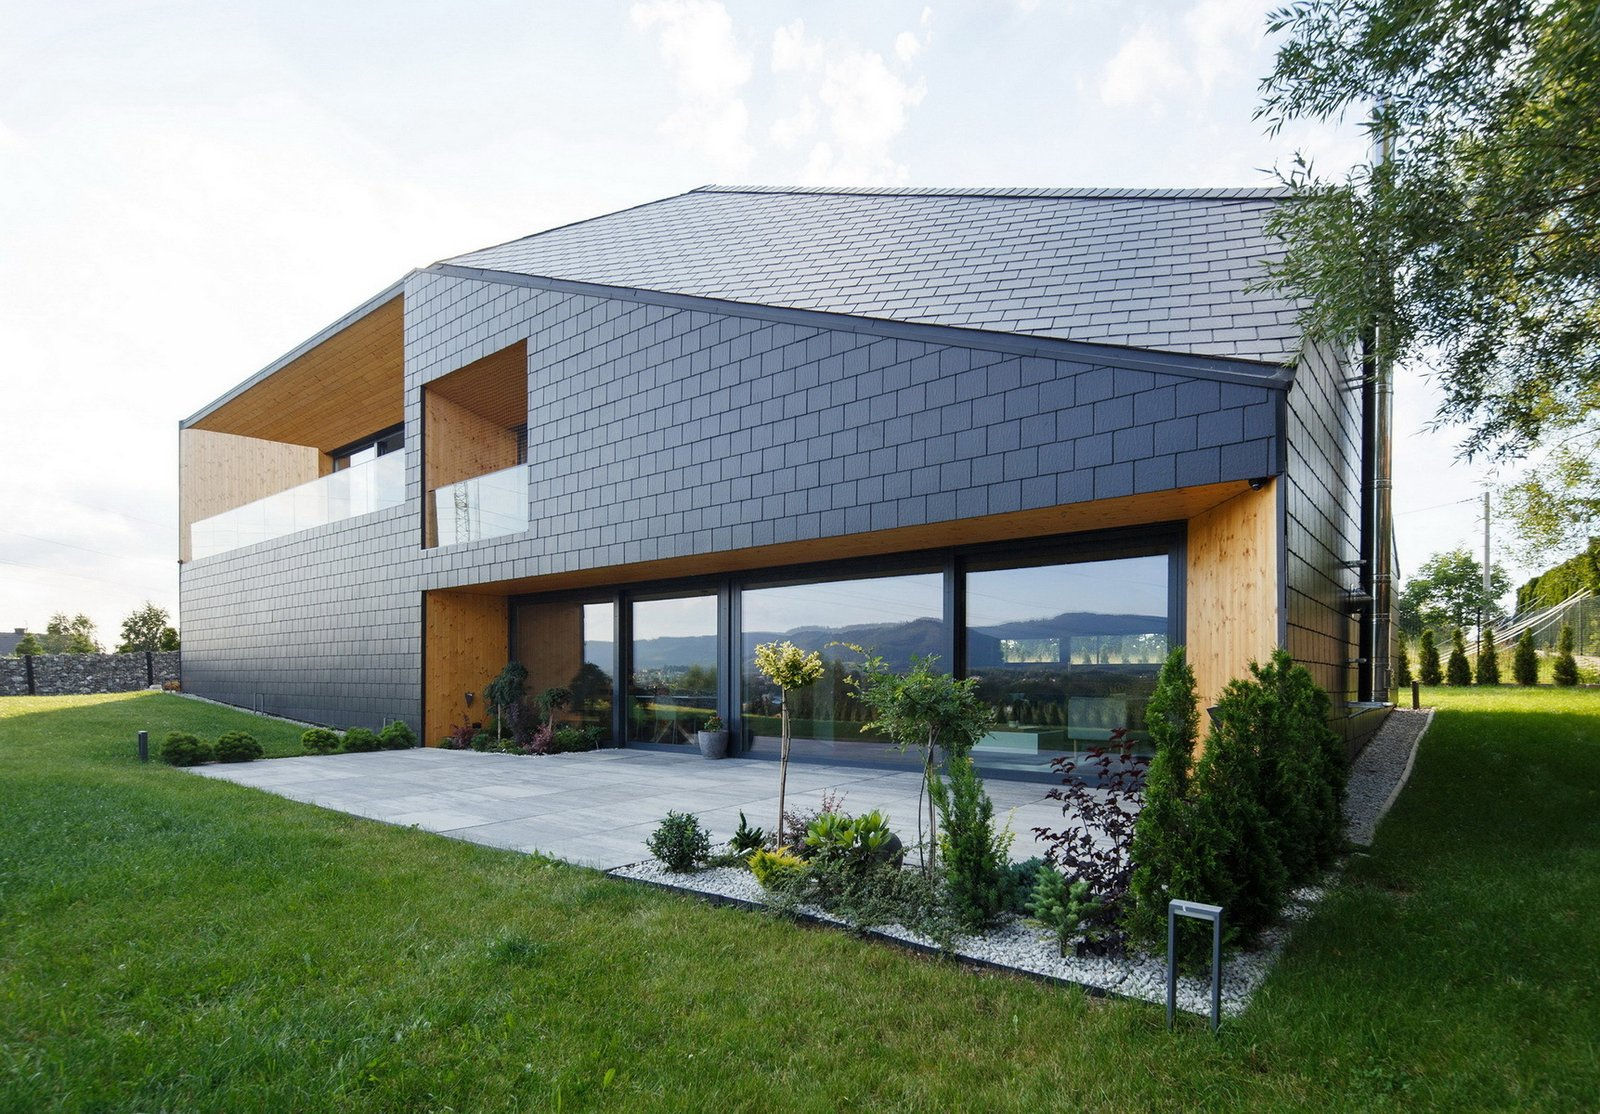 Exterior, Tile Roof Material, Cabin Building Type, House Building Type, Gable RoofLine, Hipped RoofLine, Wood Siding Material, Stone Siding Material, and Shingles Roof Material The southern wall is high and includes openings such as glazing, terrace and loggia, which provide the panoramic view.  BLACK ROCK by MUS ARCHITECTS